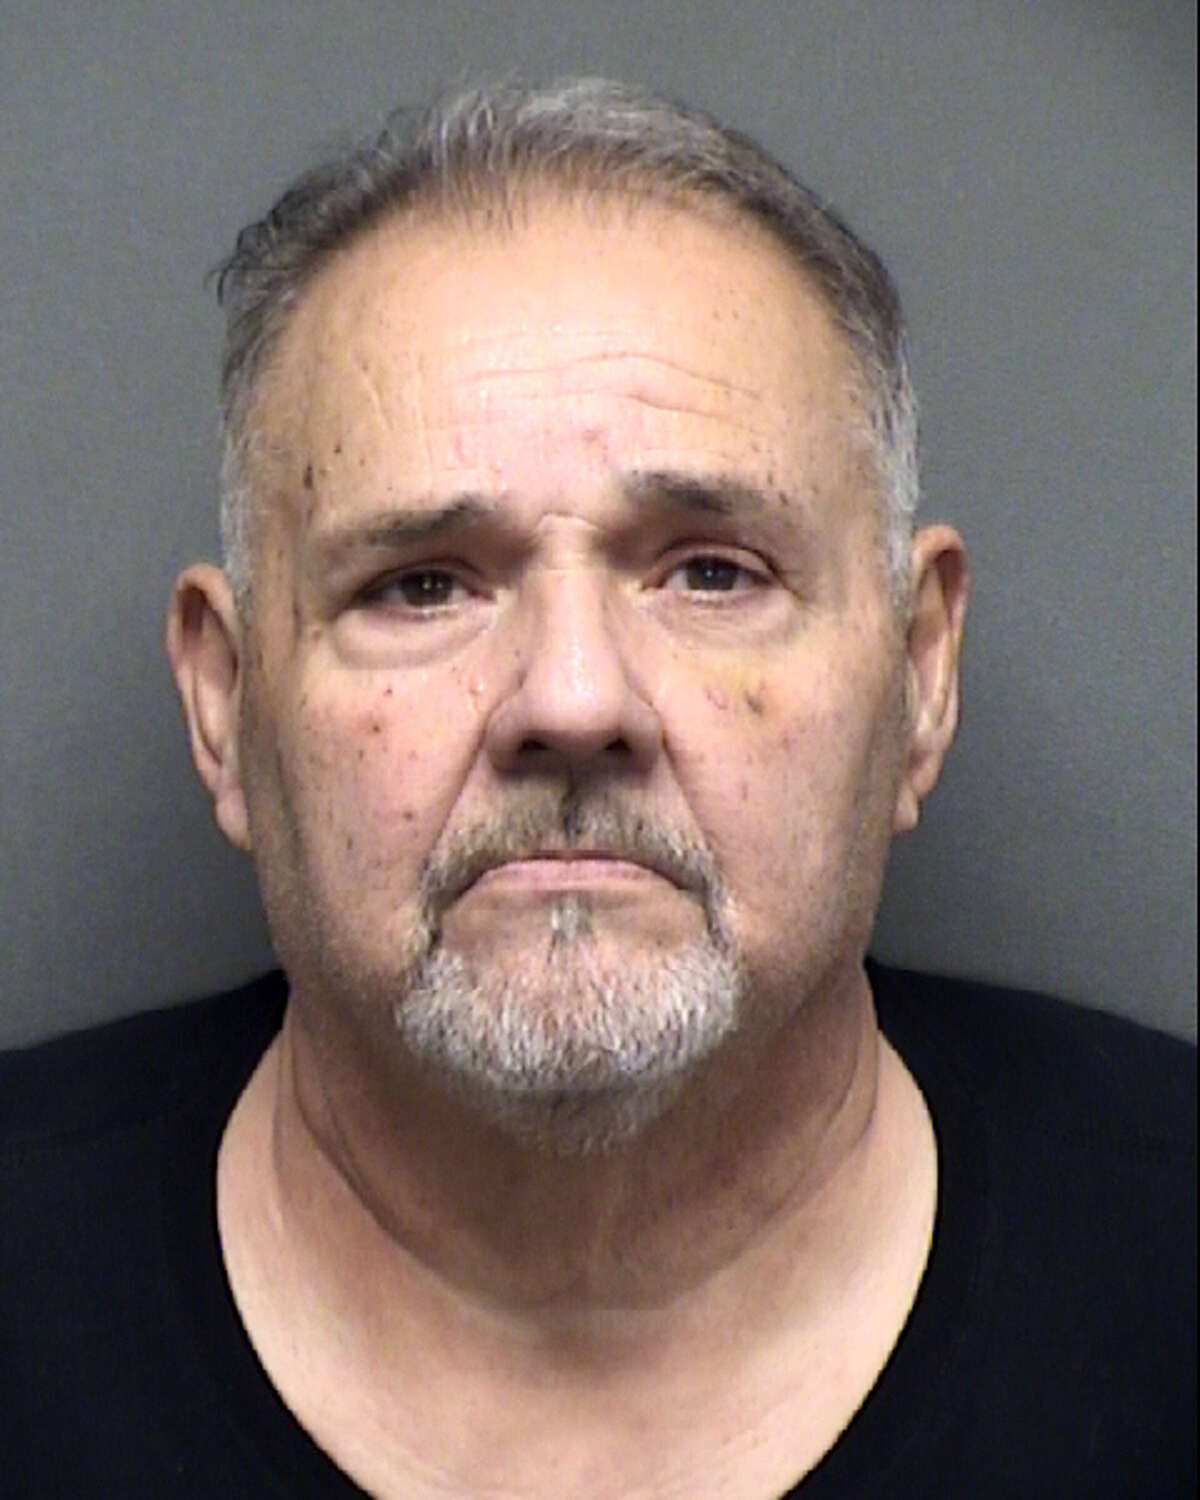 Oscar Perez, 69, was arrested after pulling a gun on church volunteers over parking, according to an arrest affidavit.